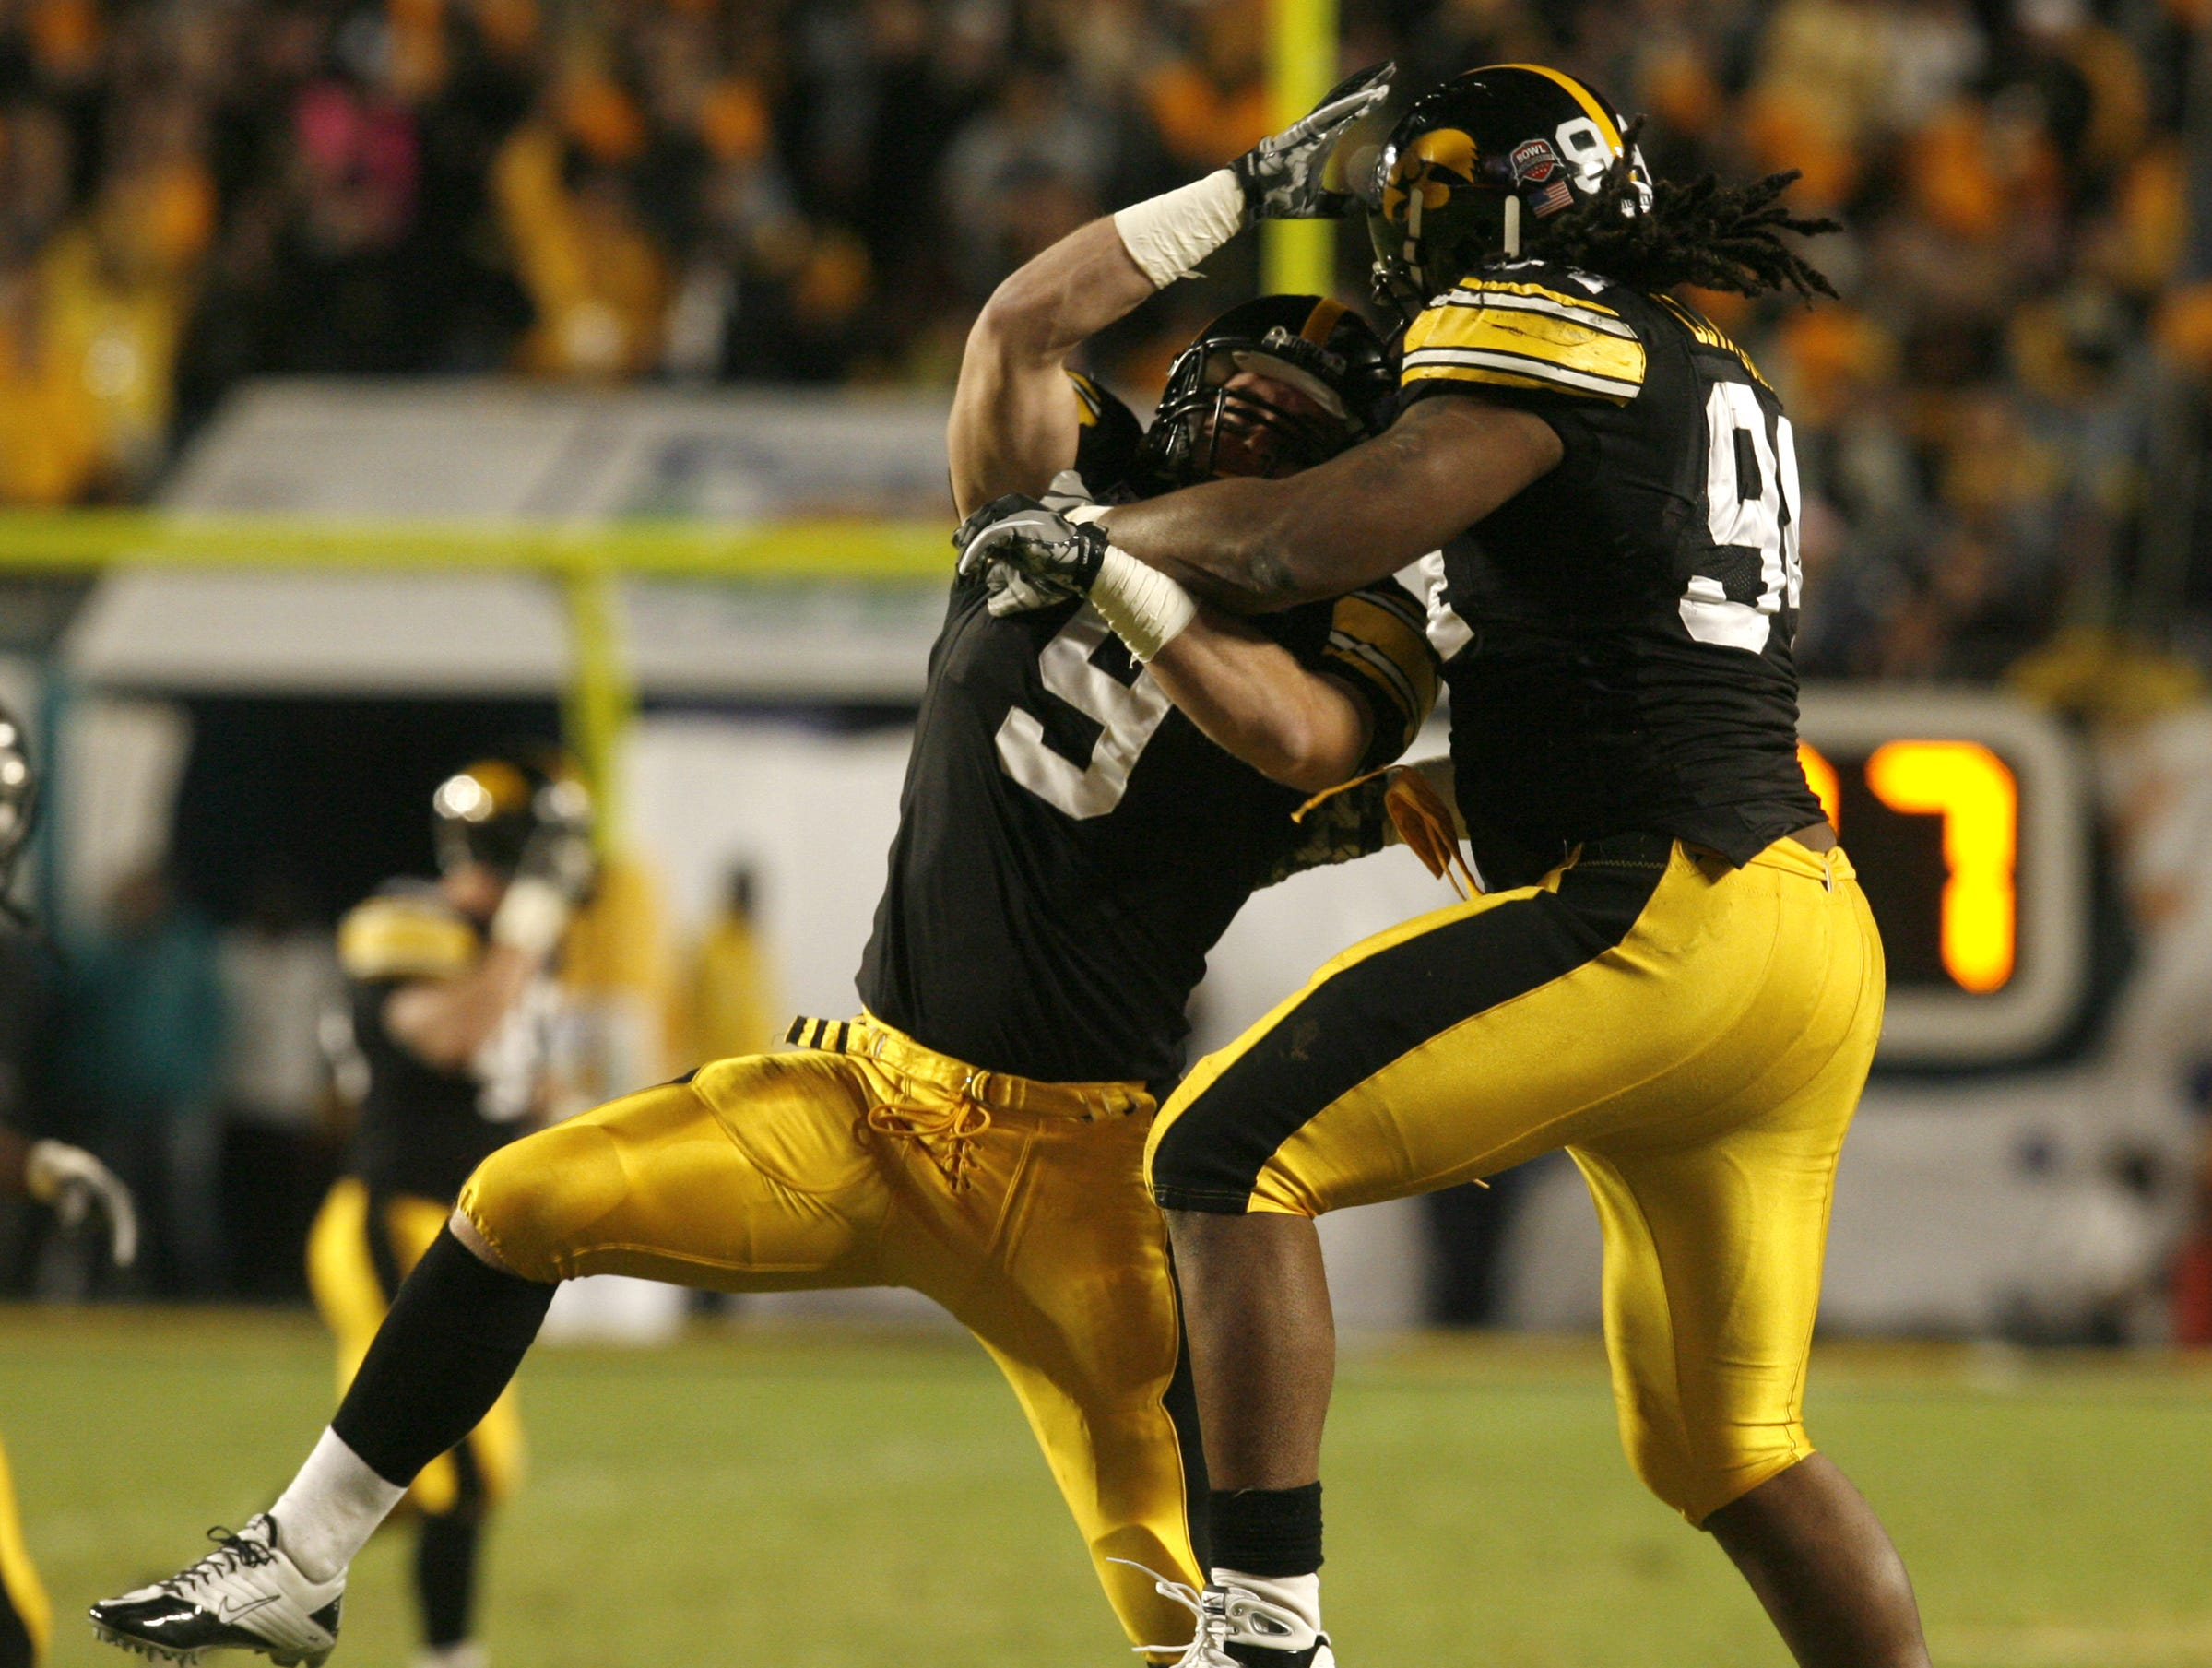 Iowa's Tyler Sash and Adrian Clayborn celebrate after stopping Georgia Tech, in the first quarter of the Orange Bowl, Tuesday, Jan. 5, 2010, at LandShark Stadium, in Miami Gardens, Fl.